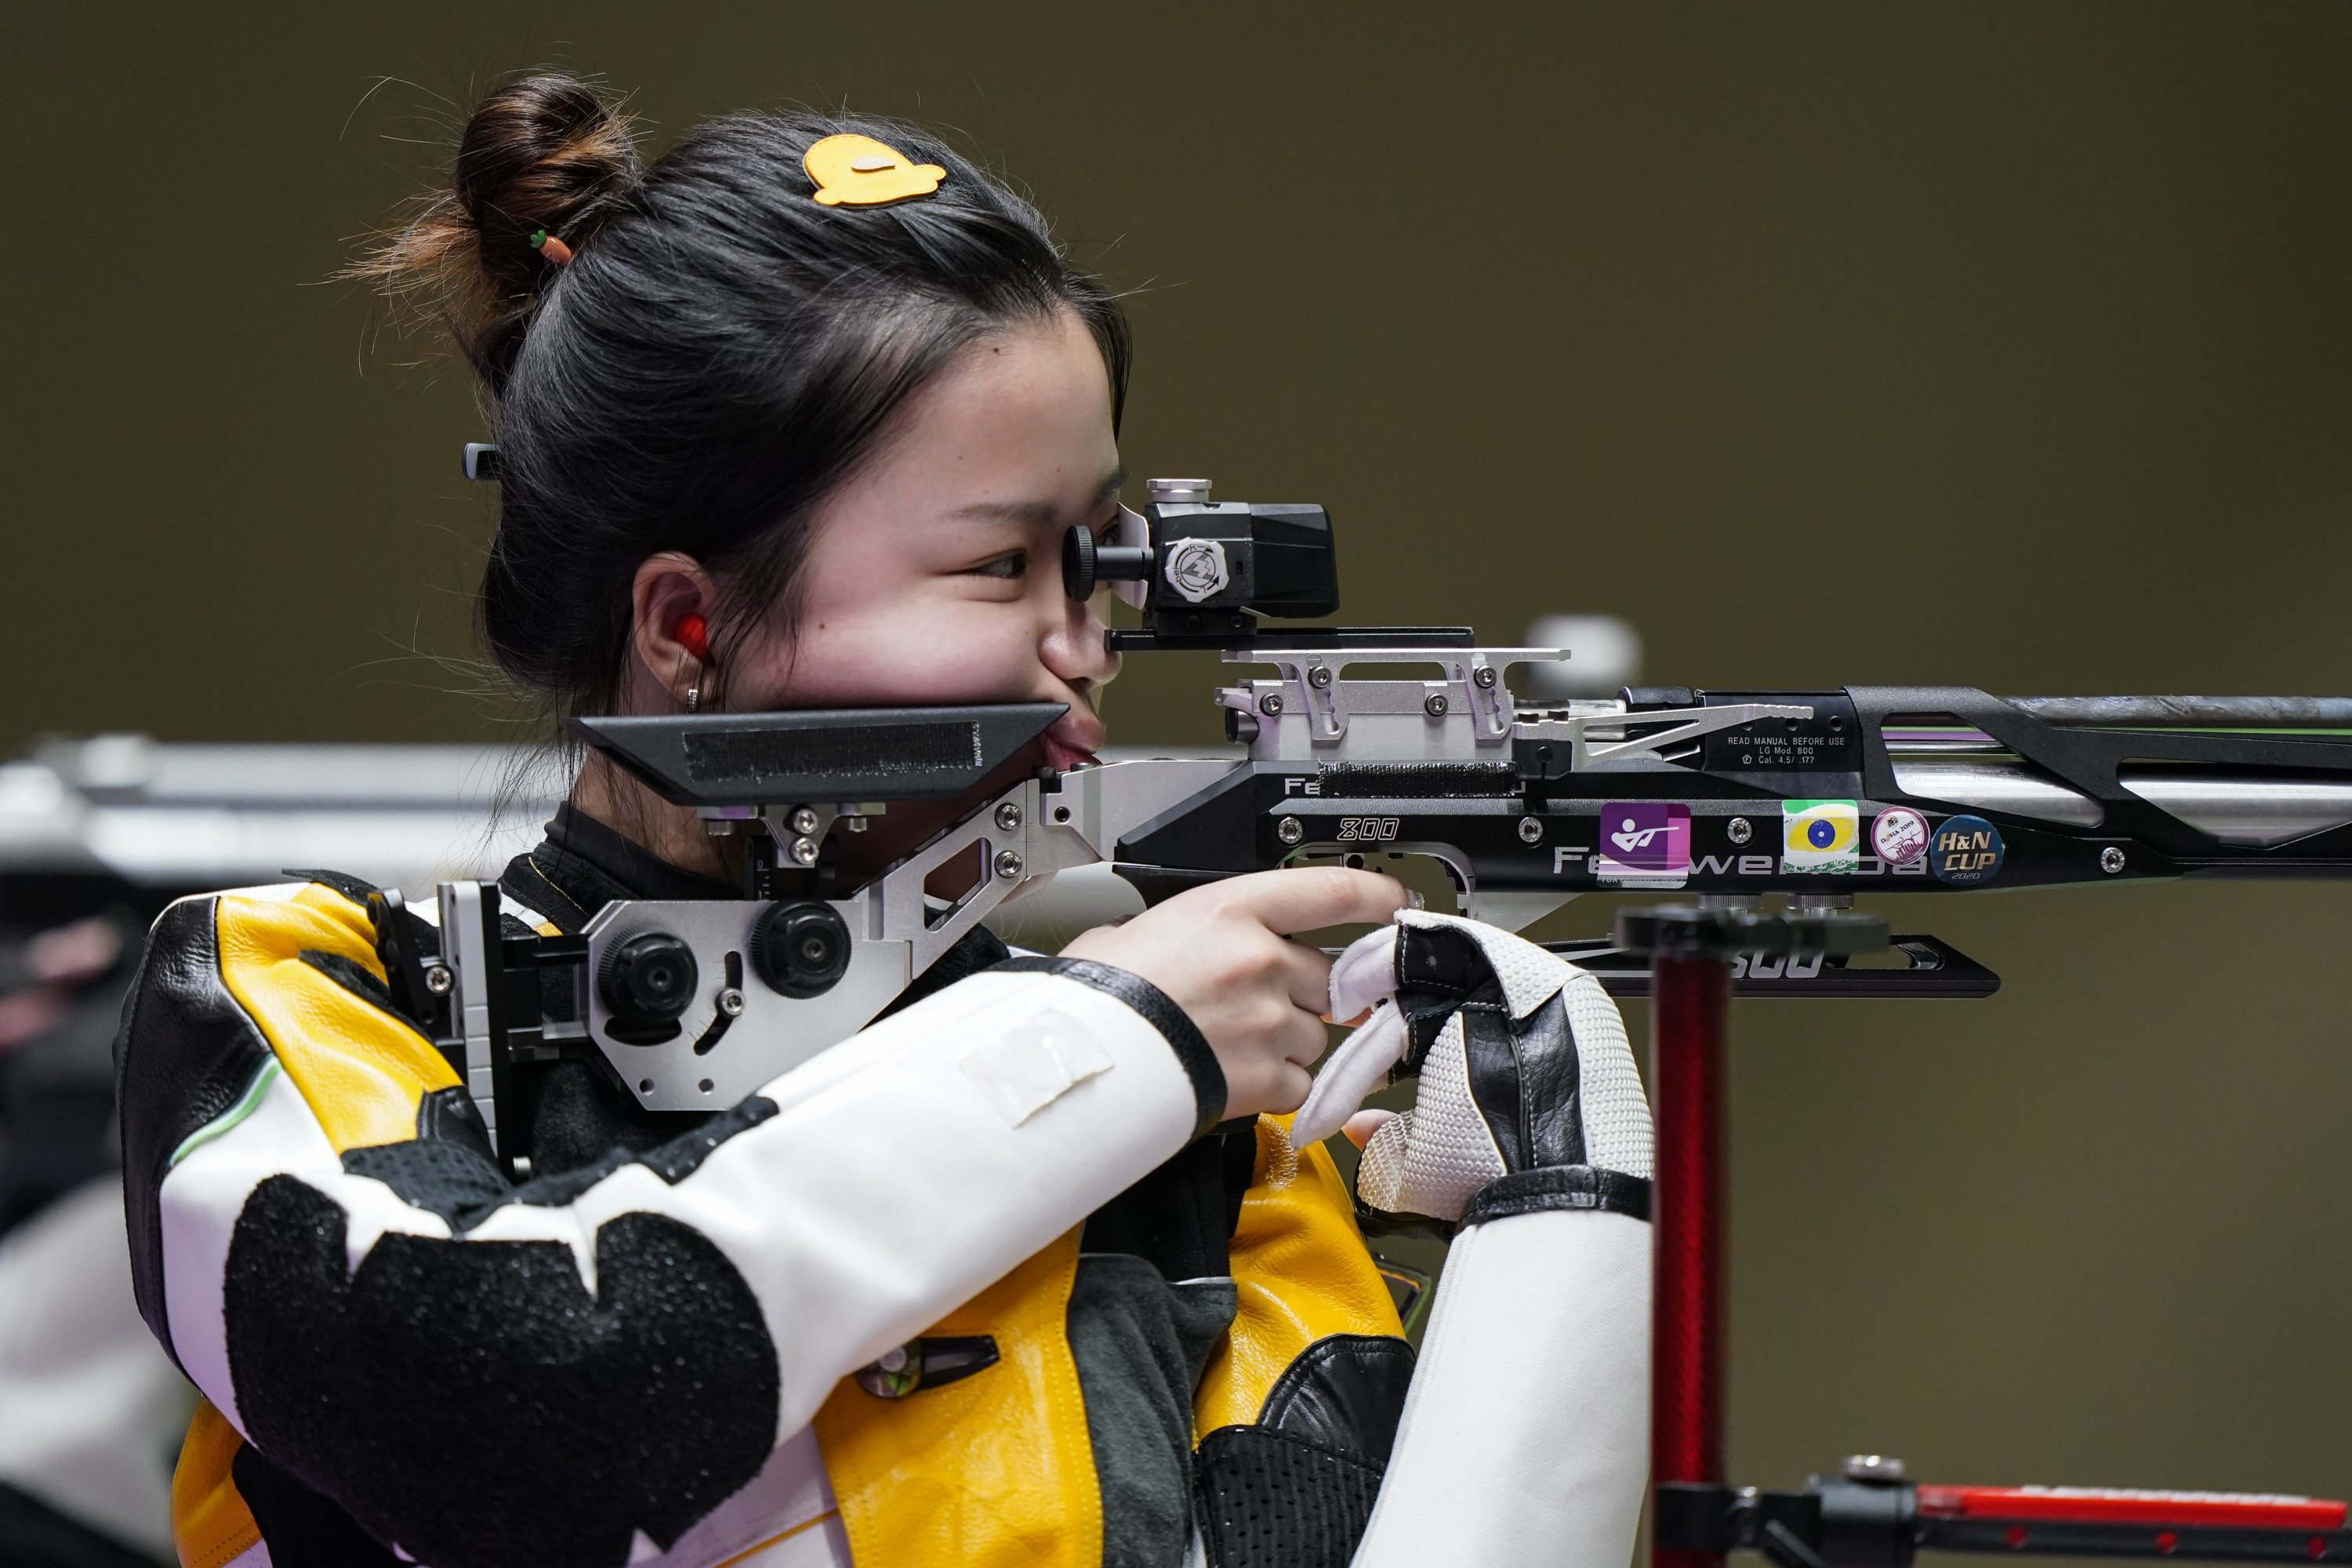 Yang Qian, of China, competes in the women's 10-meter air rifle at the Asaka Shooting Range in the 2020 Summer Olympics, in Tokyo, Japan, July 24, 2021. (AP Photo)